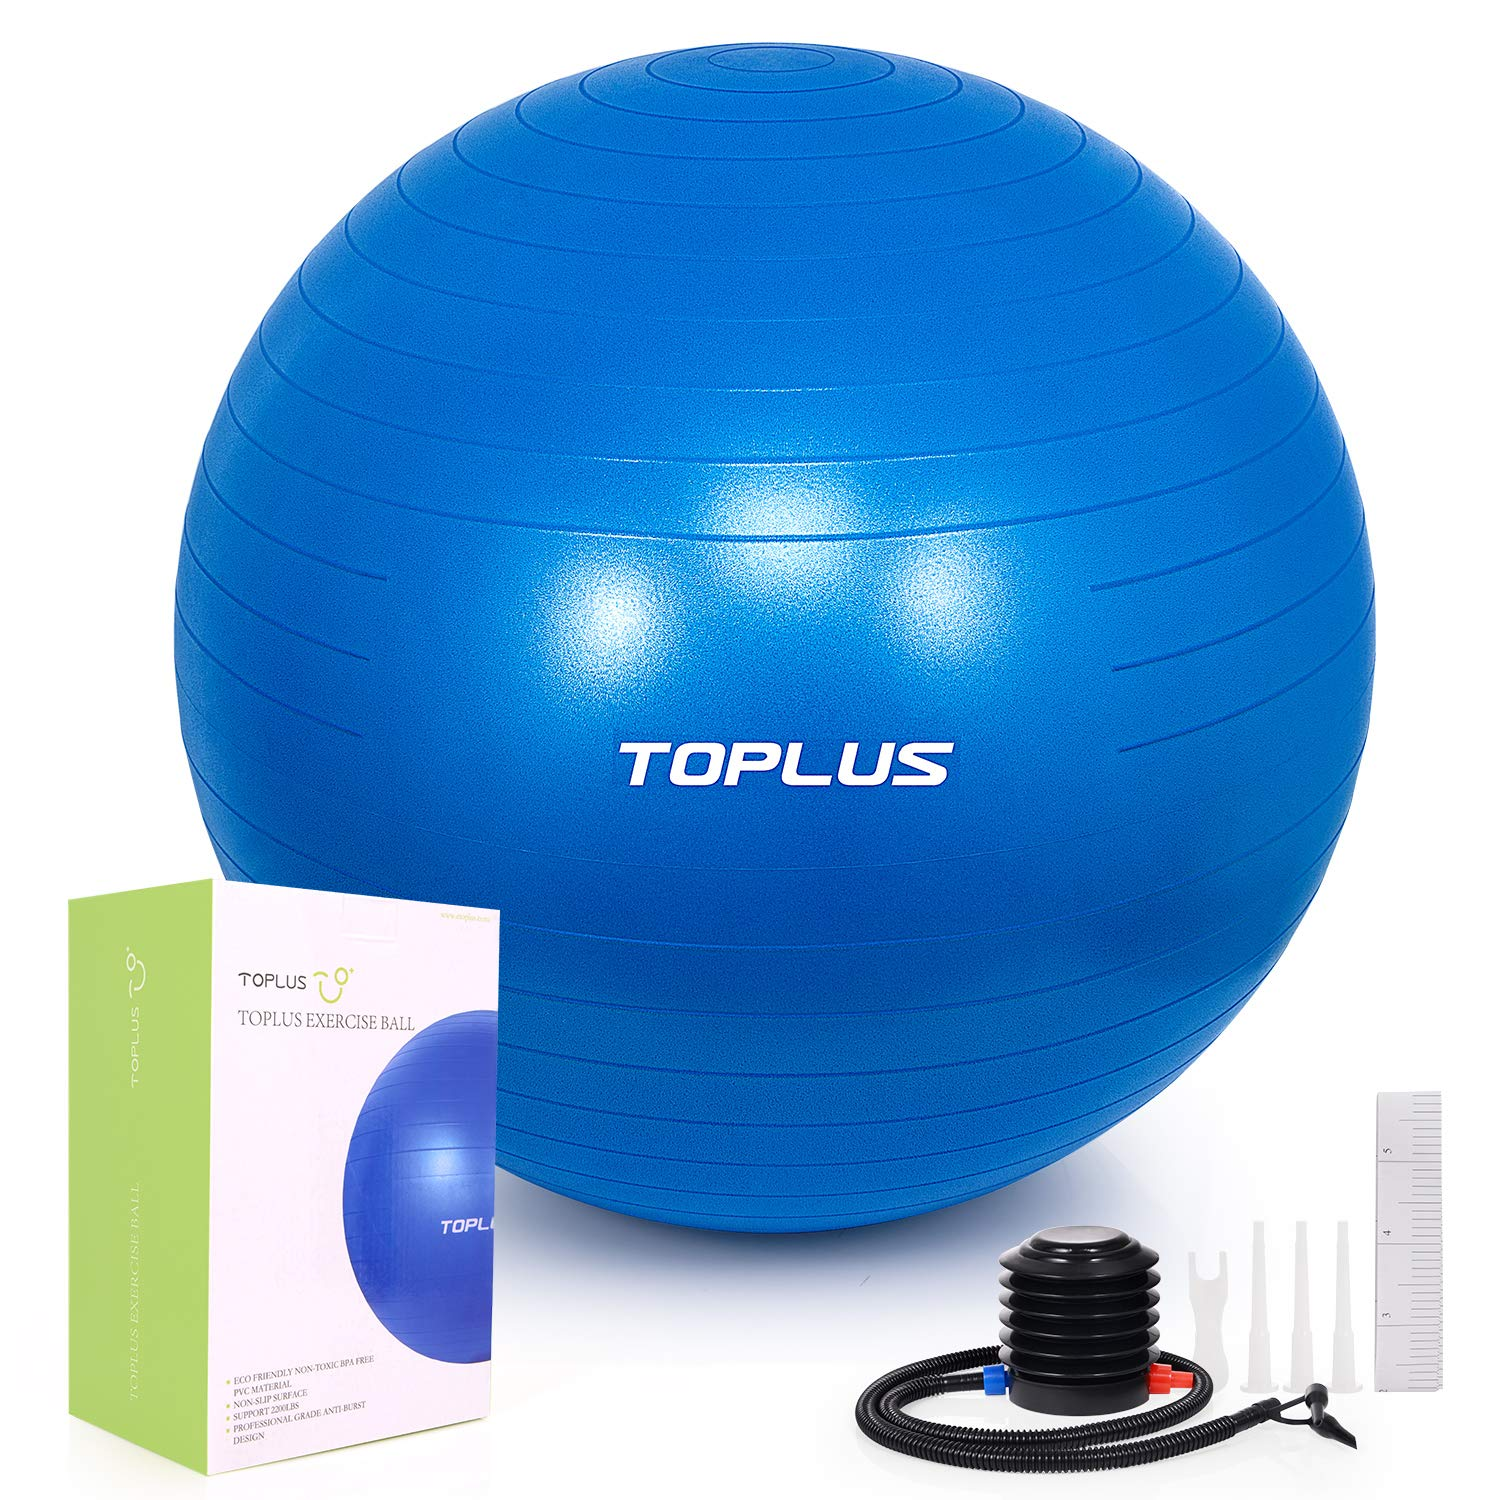 TOPLUS Exercise Ball (Multiple Sizes) Extra Thick Yoga Ball Chair for Fitness, Stability, Balance, Pilates, Birthing - Anti Burst Supports 2200lbs - Includes Quick Pump & Professional Guide